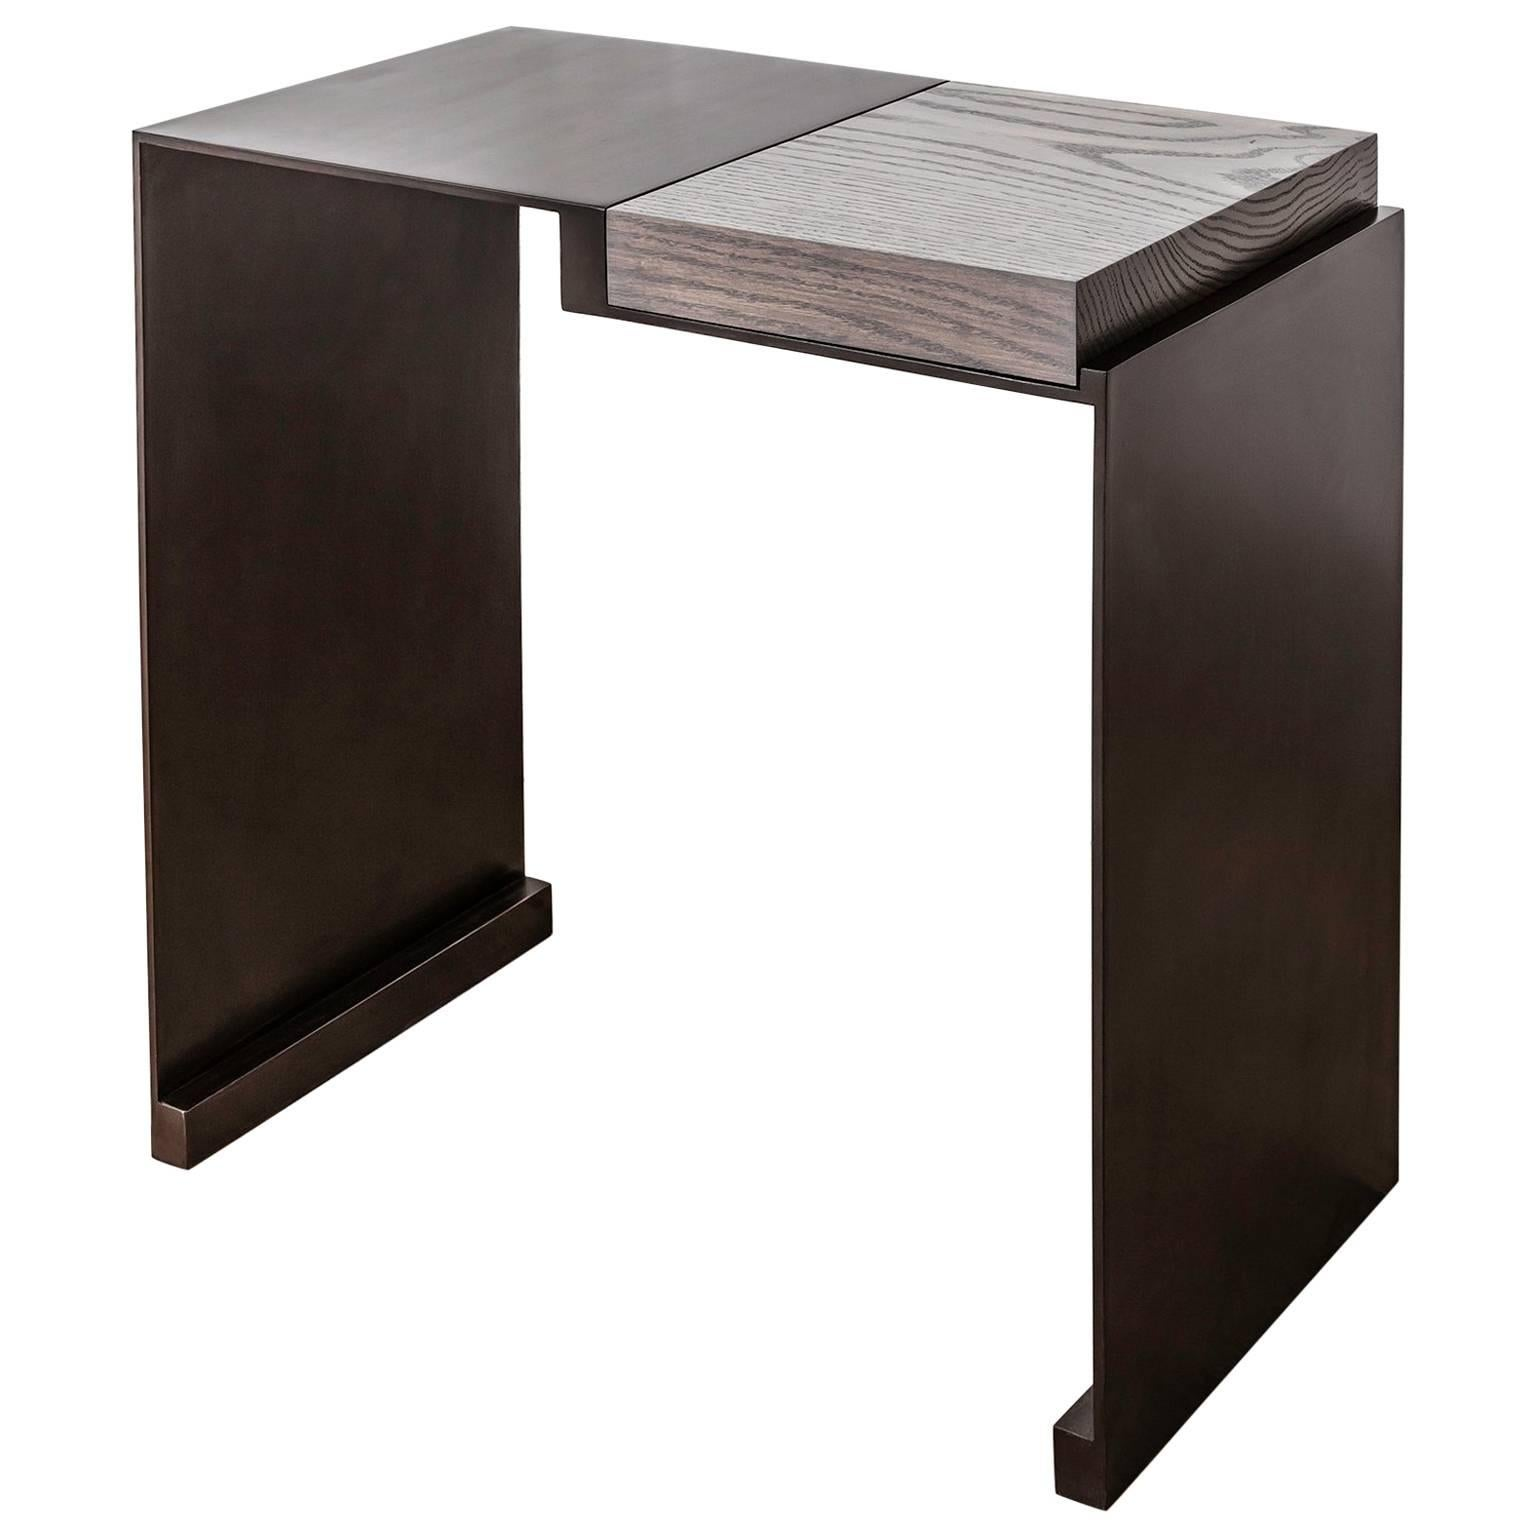 'Roque' Contemporary Side Table Blackened Steel and Oak by Vivian Carbonell